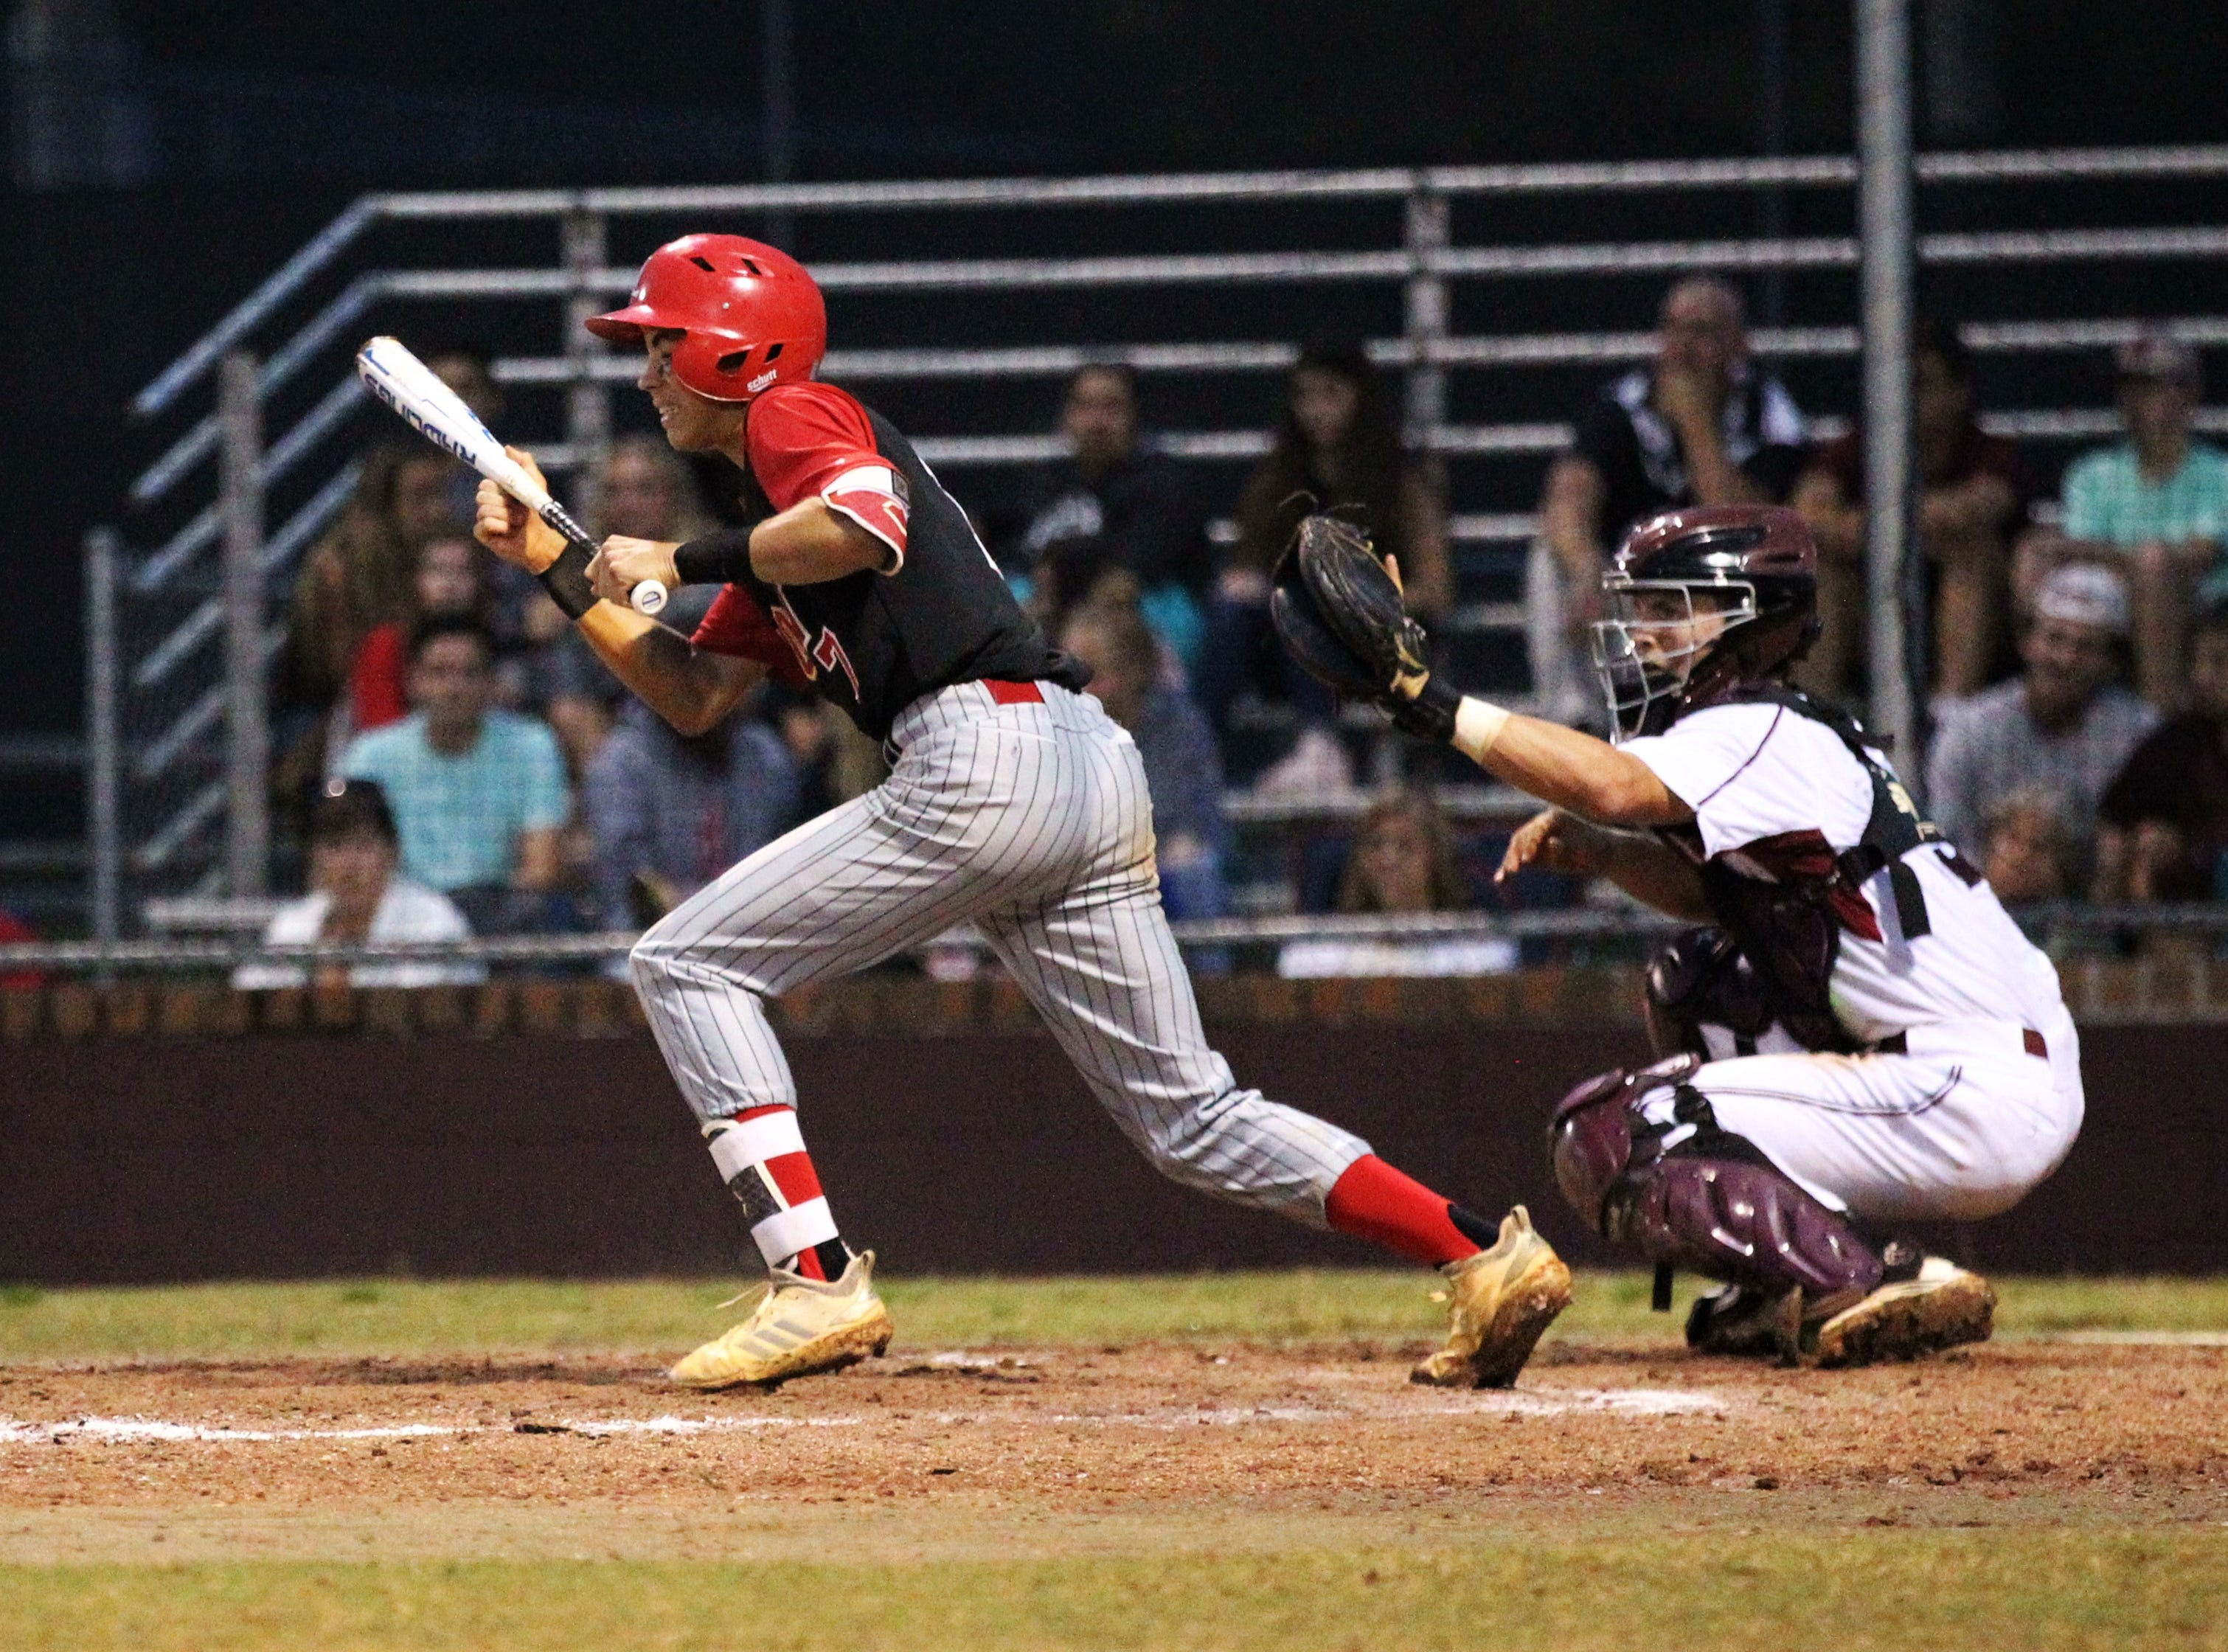 Leon senior True Fontenot looks to bunt as Chiles won an 11-6 home game against Leon on Friday, April 5, 2019, to force a season split. The Lions won 3-0 earlier in the week.